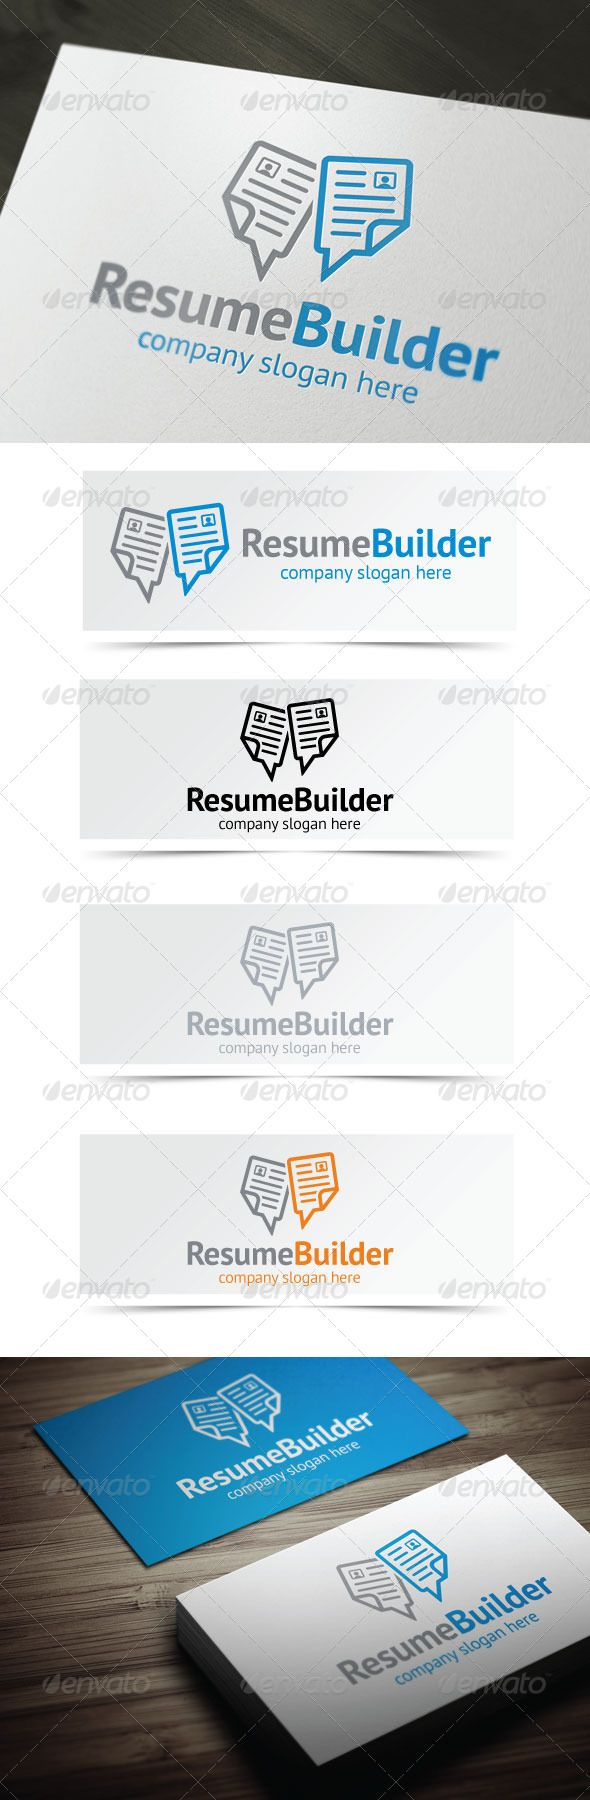 resume builder app best ideas about resume builder template pinterest resume builder graphicriver user debo portfolio